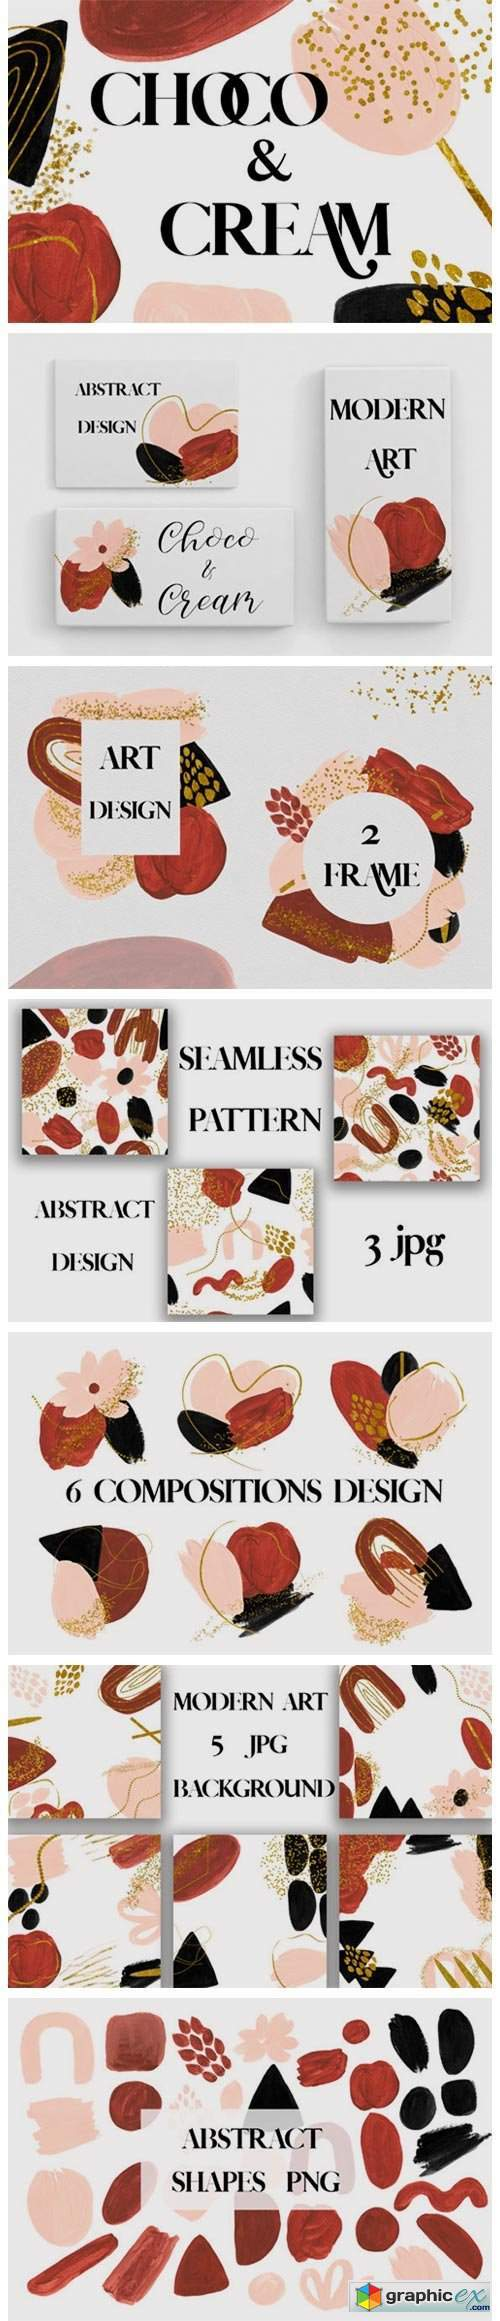 Abstract Modern Shapes Design